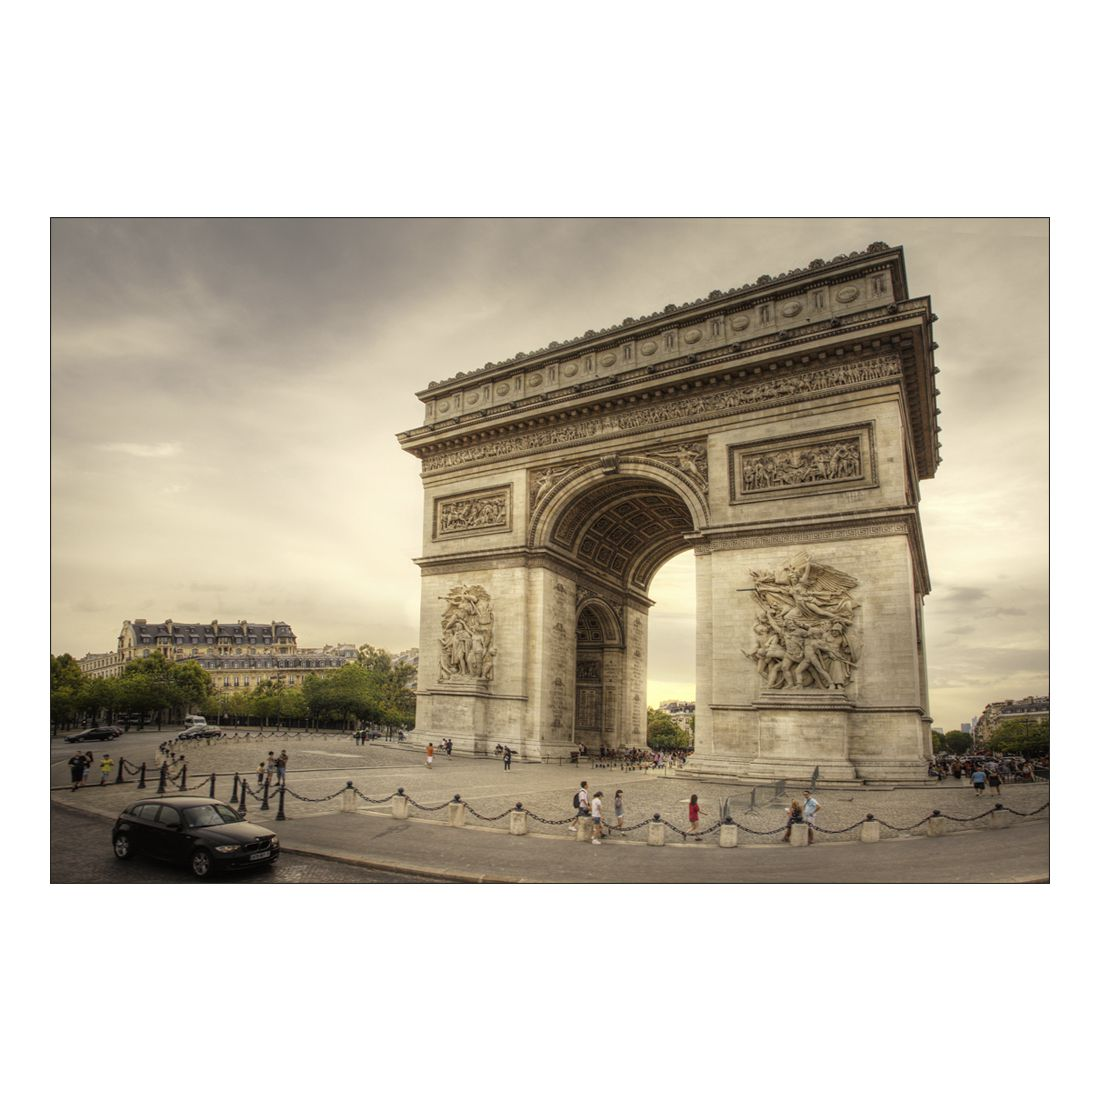 Acrylglasbild L'Arc de Triomphe Paris – Abmessung 75×50 cm, Gallery of Innovative Art online kaufen